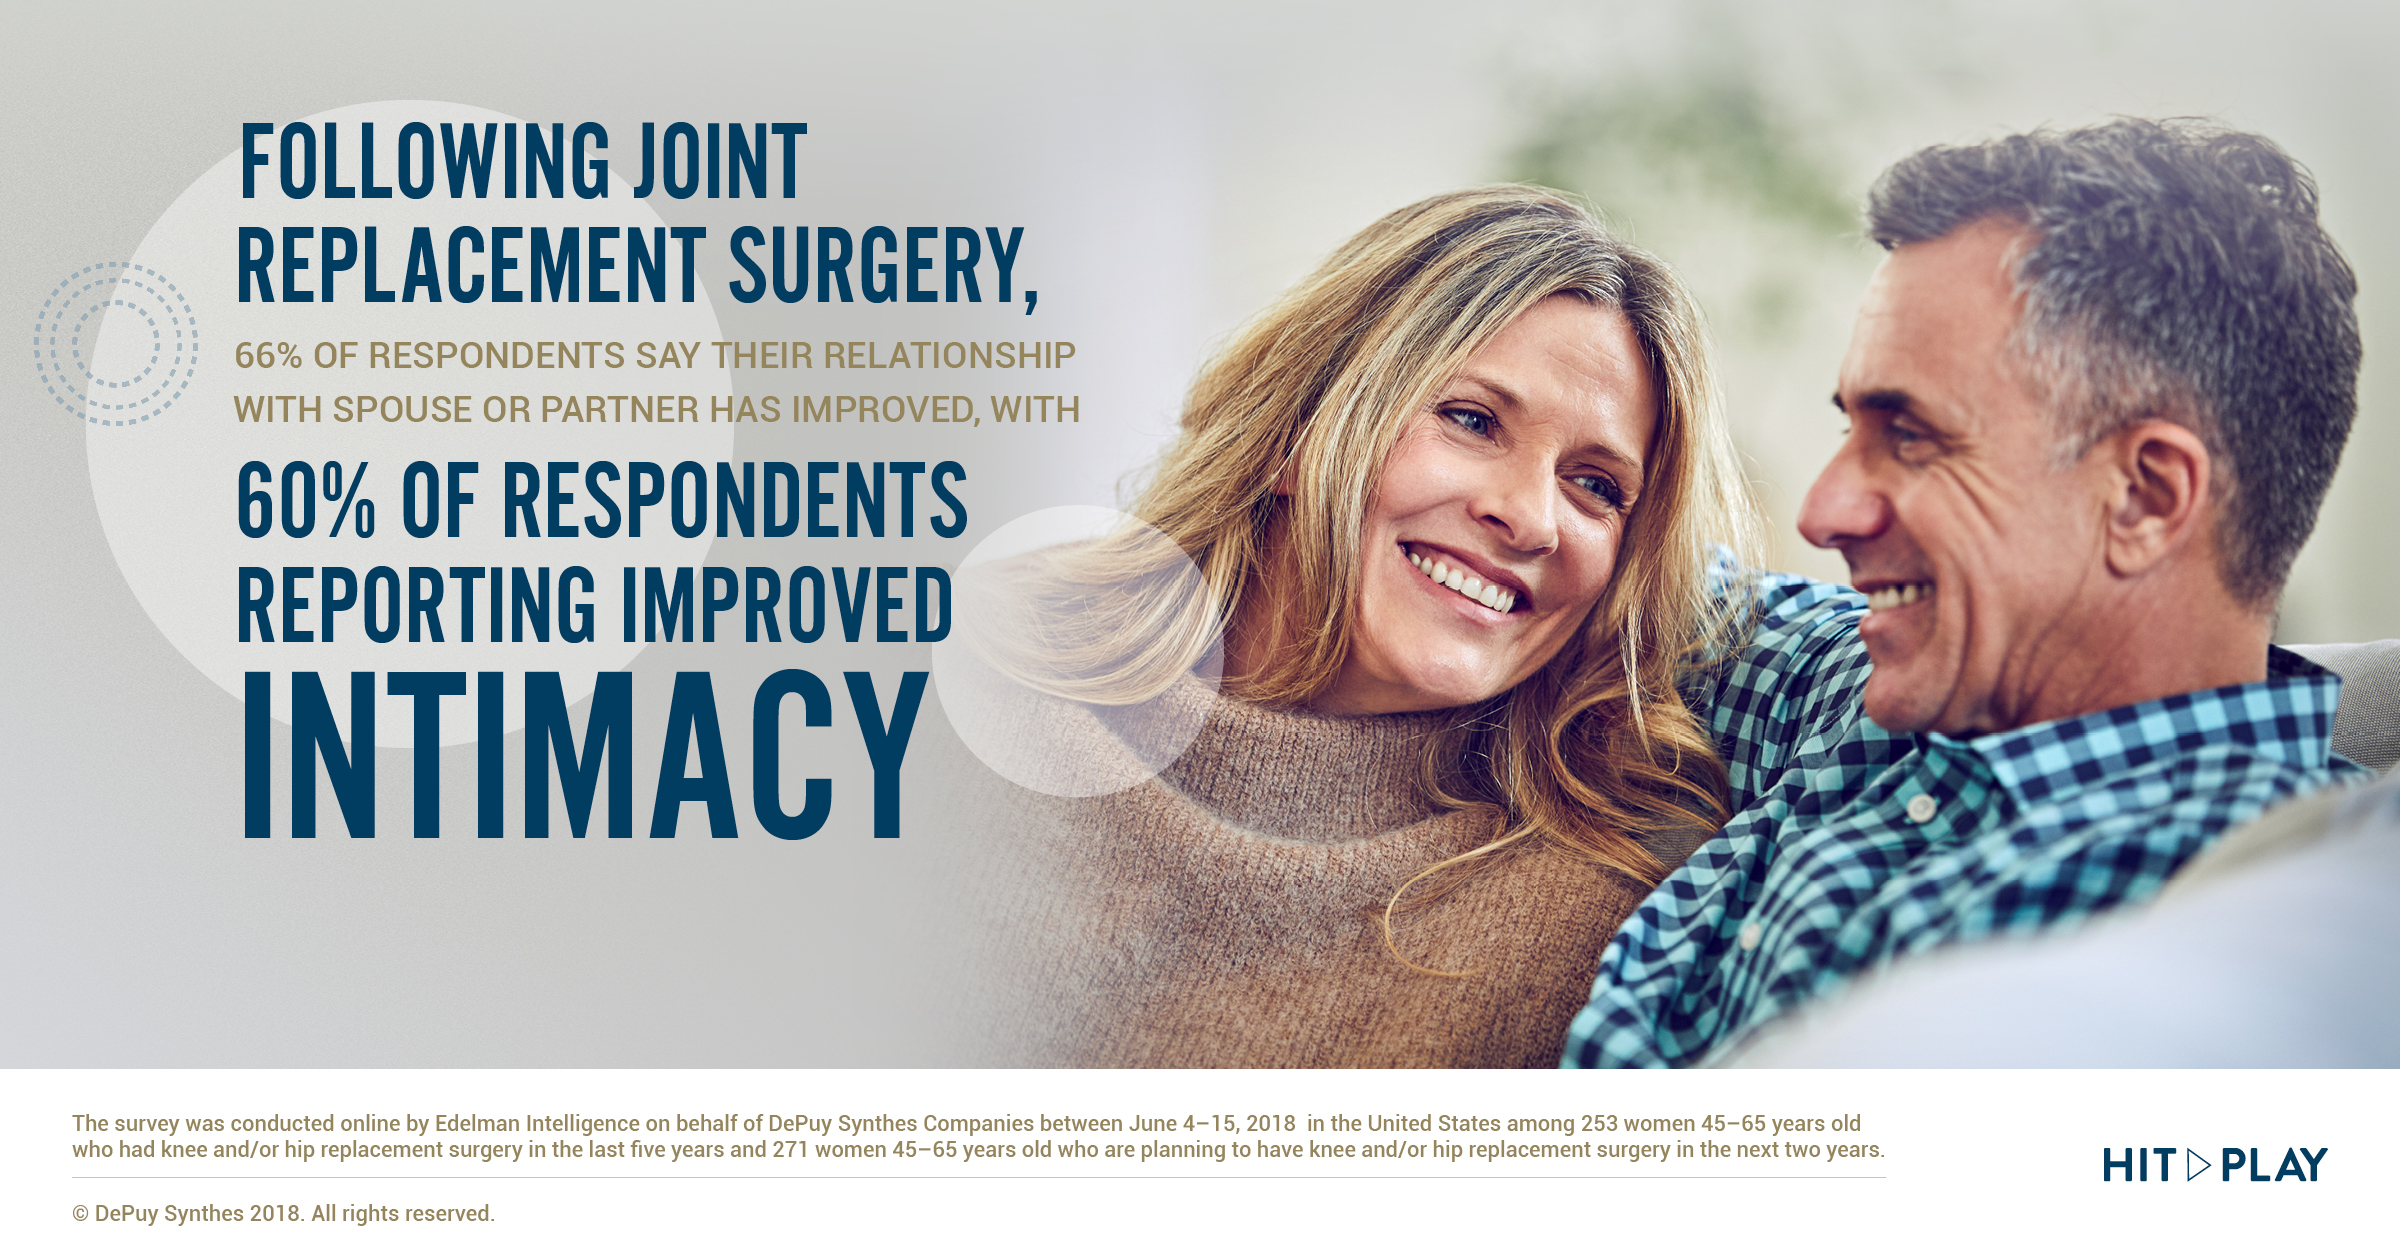 Intimacy Improved for many who have had joint replacement surgery for pain issues.